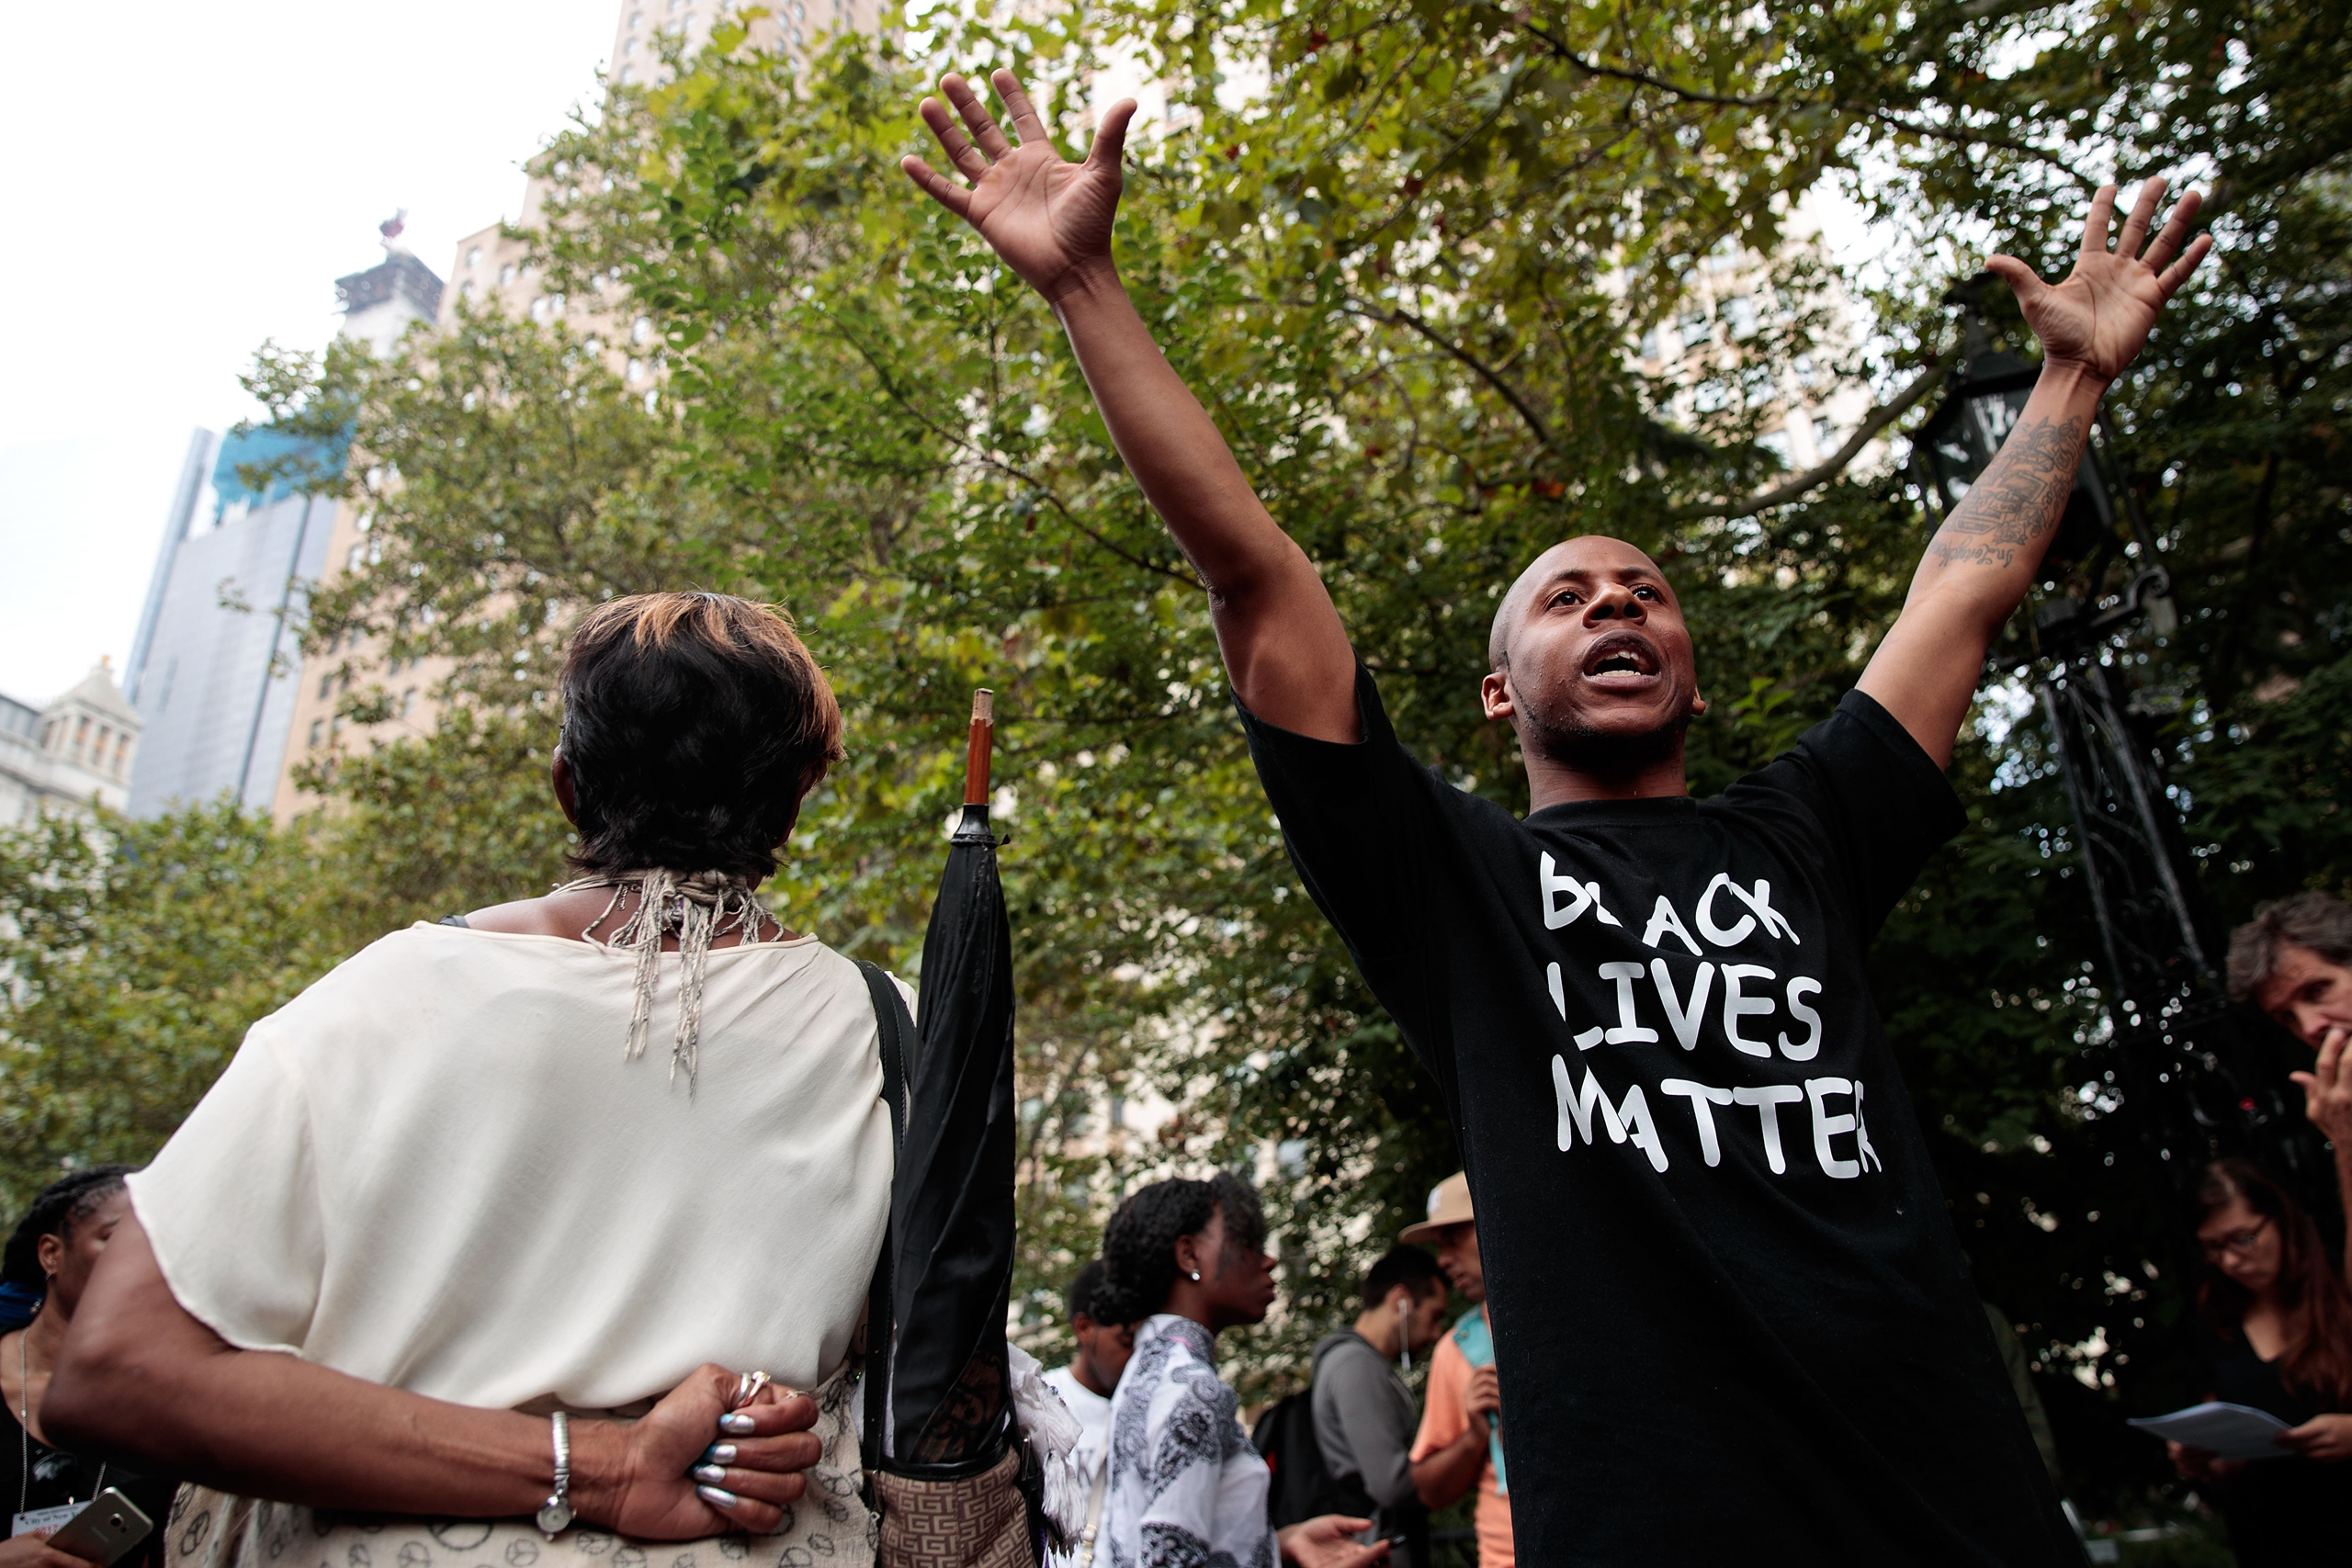 People rally during a protest against police brutality at City Hall Park in New York City on Aug. 1, 2016.